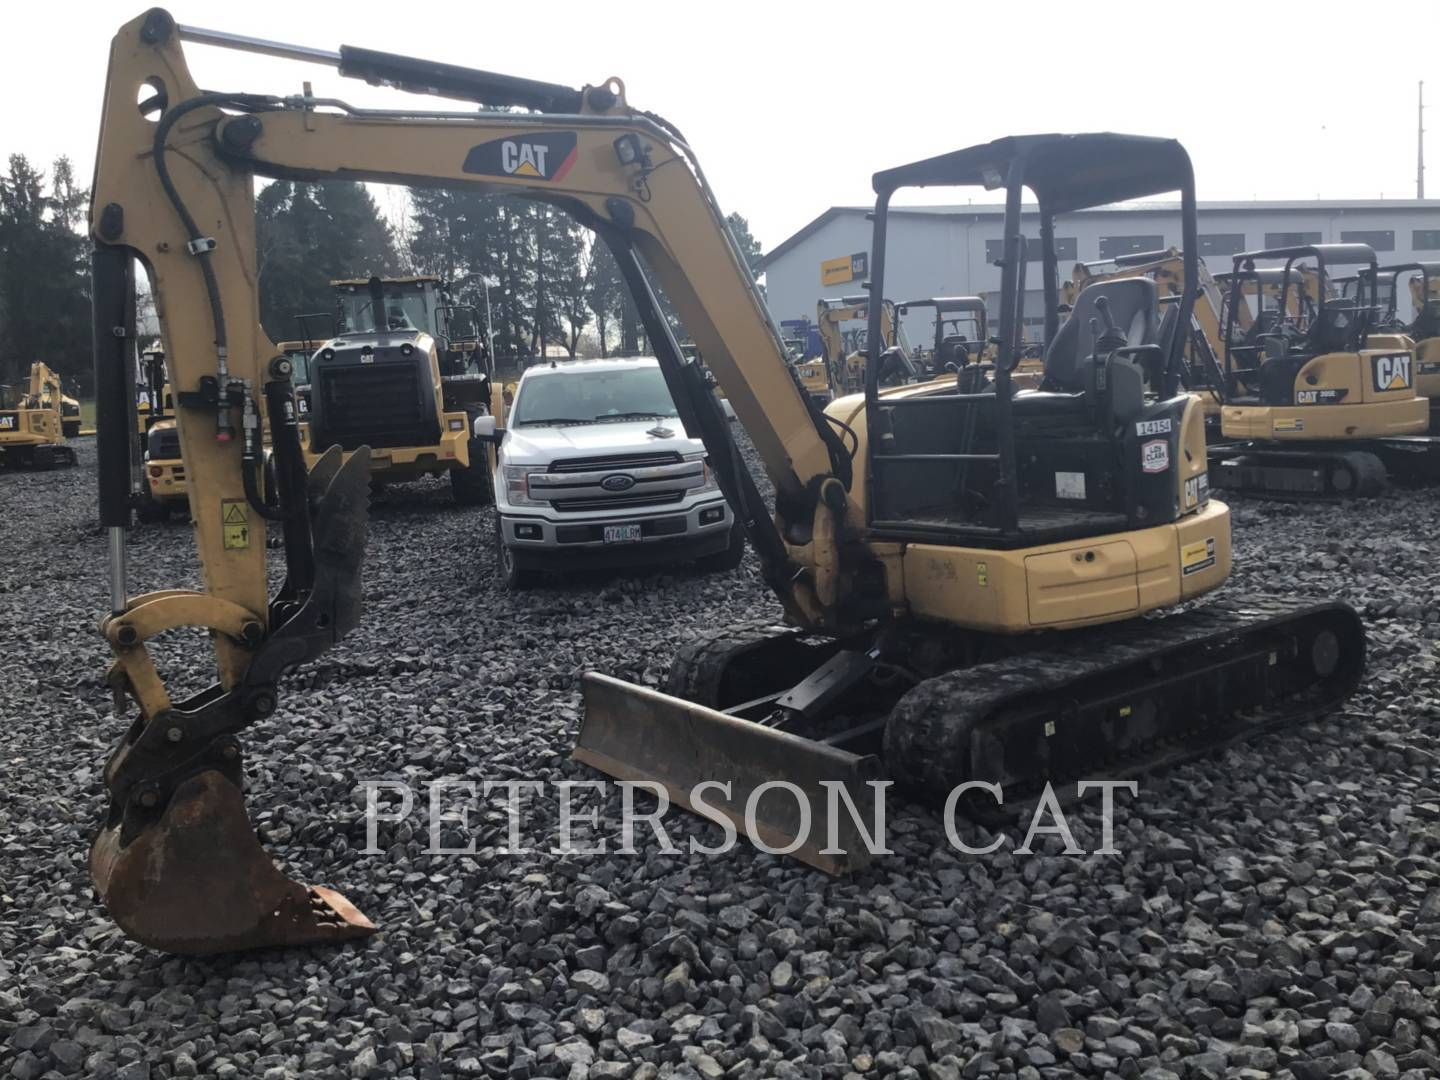 2017 Caterpillar 305E2 Excavators and Mini Excavator